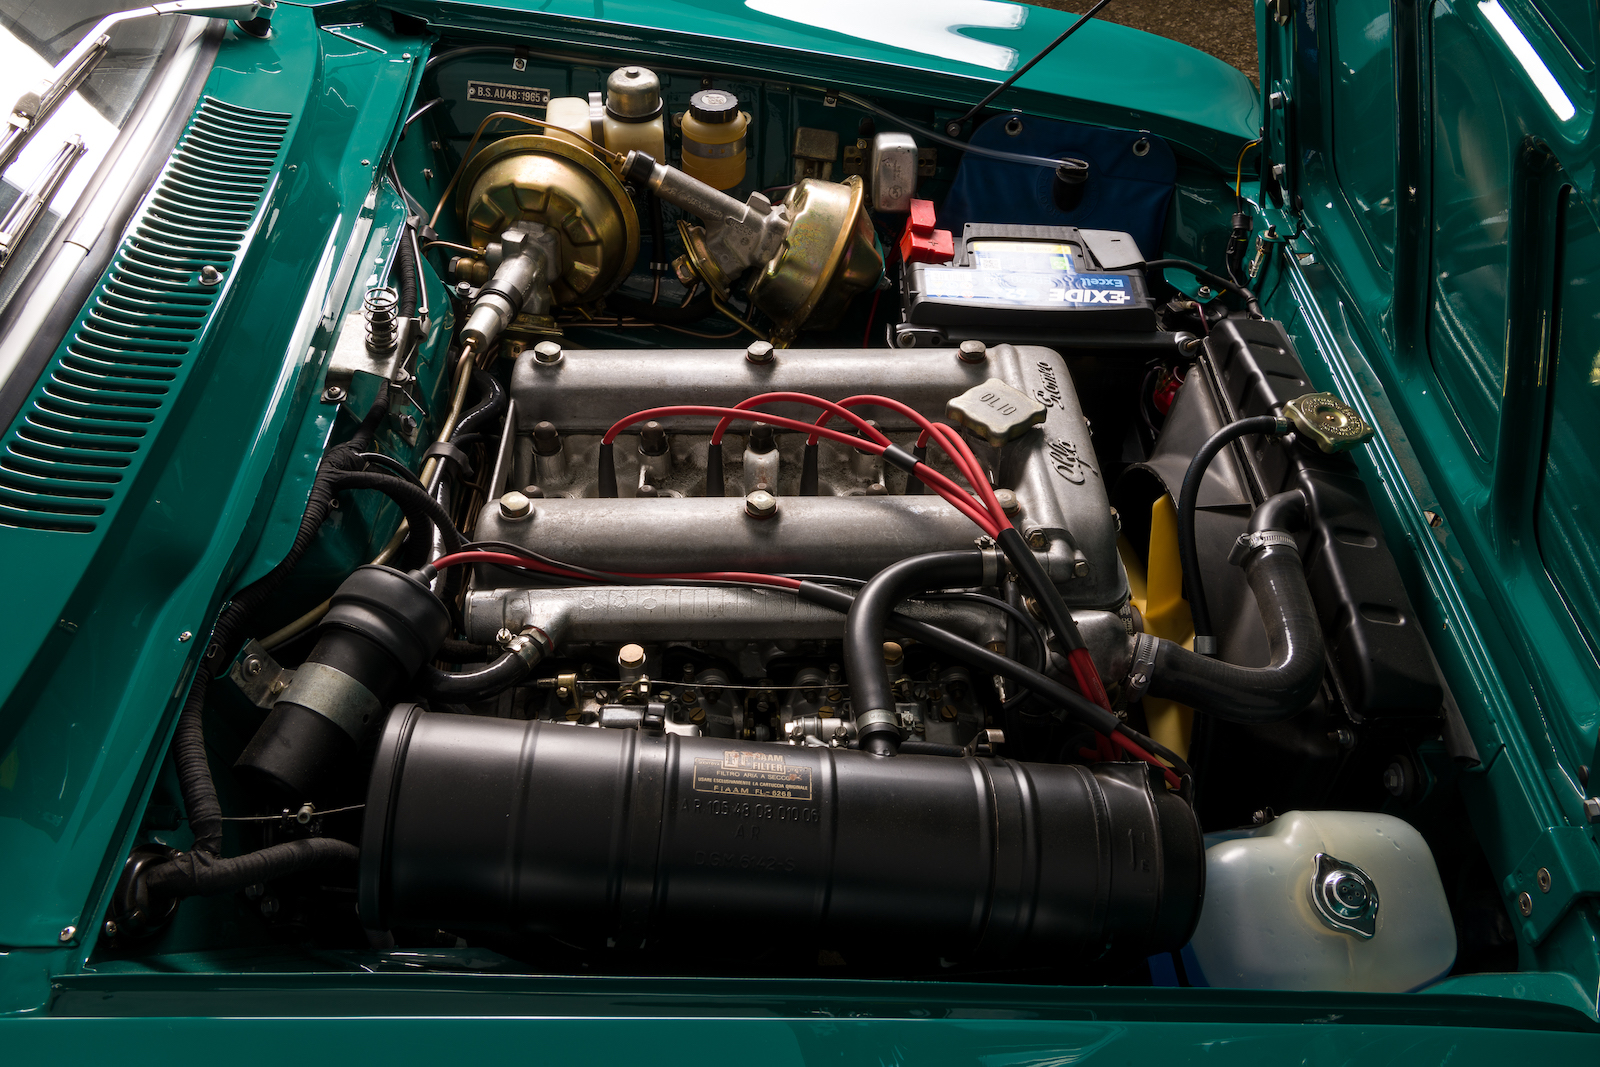 Alfa Romeo 2000 GTV: Engine bay